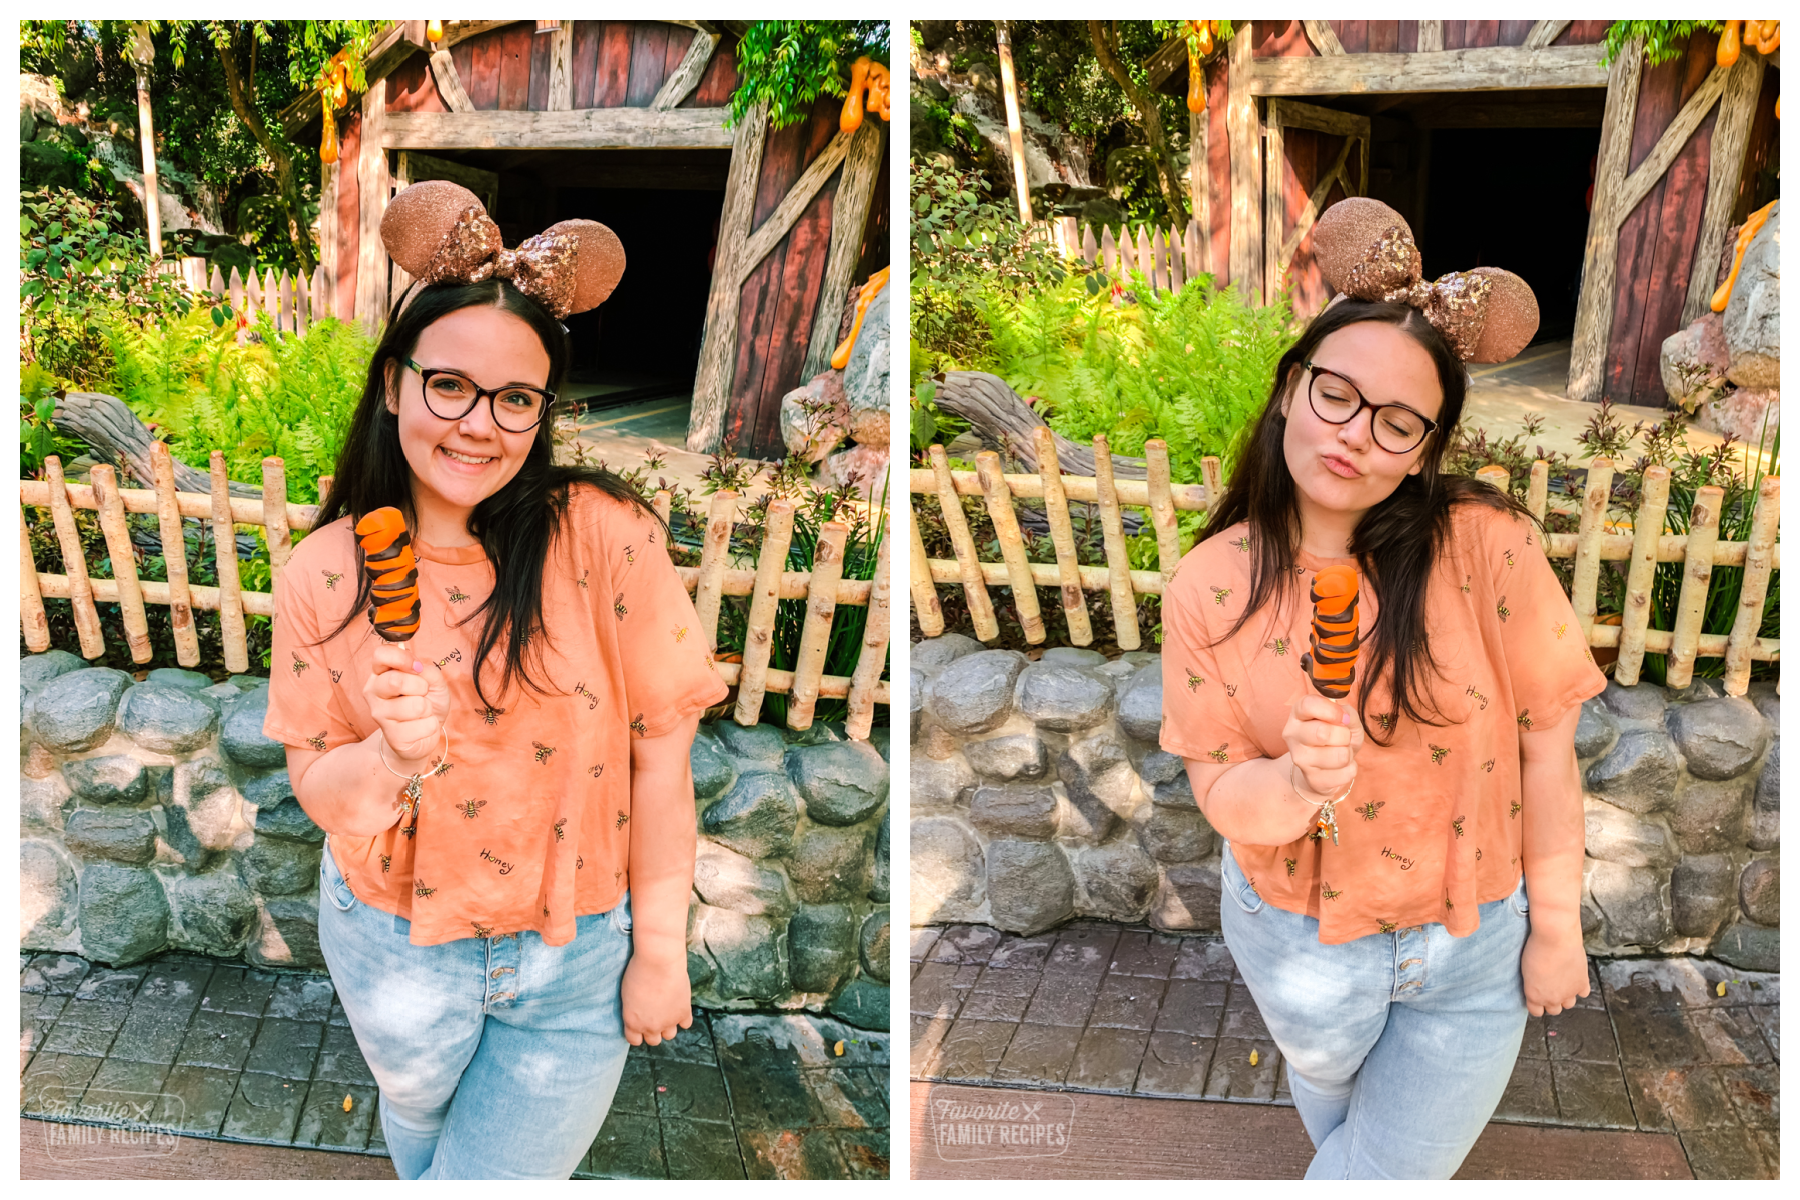 Cute girl wearing Disney ears eating a Tigger tail